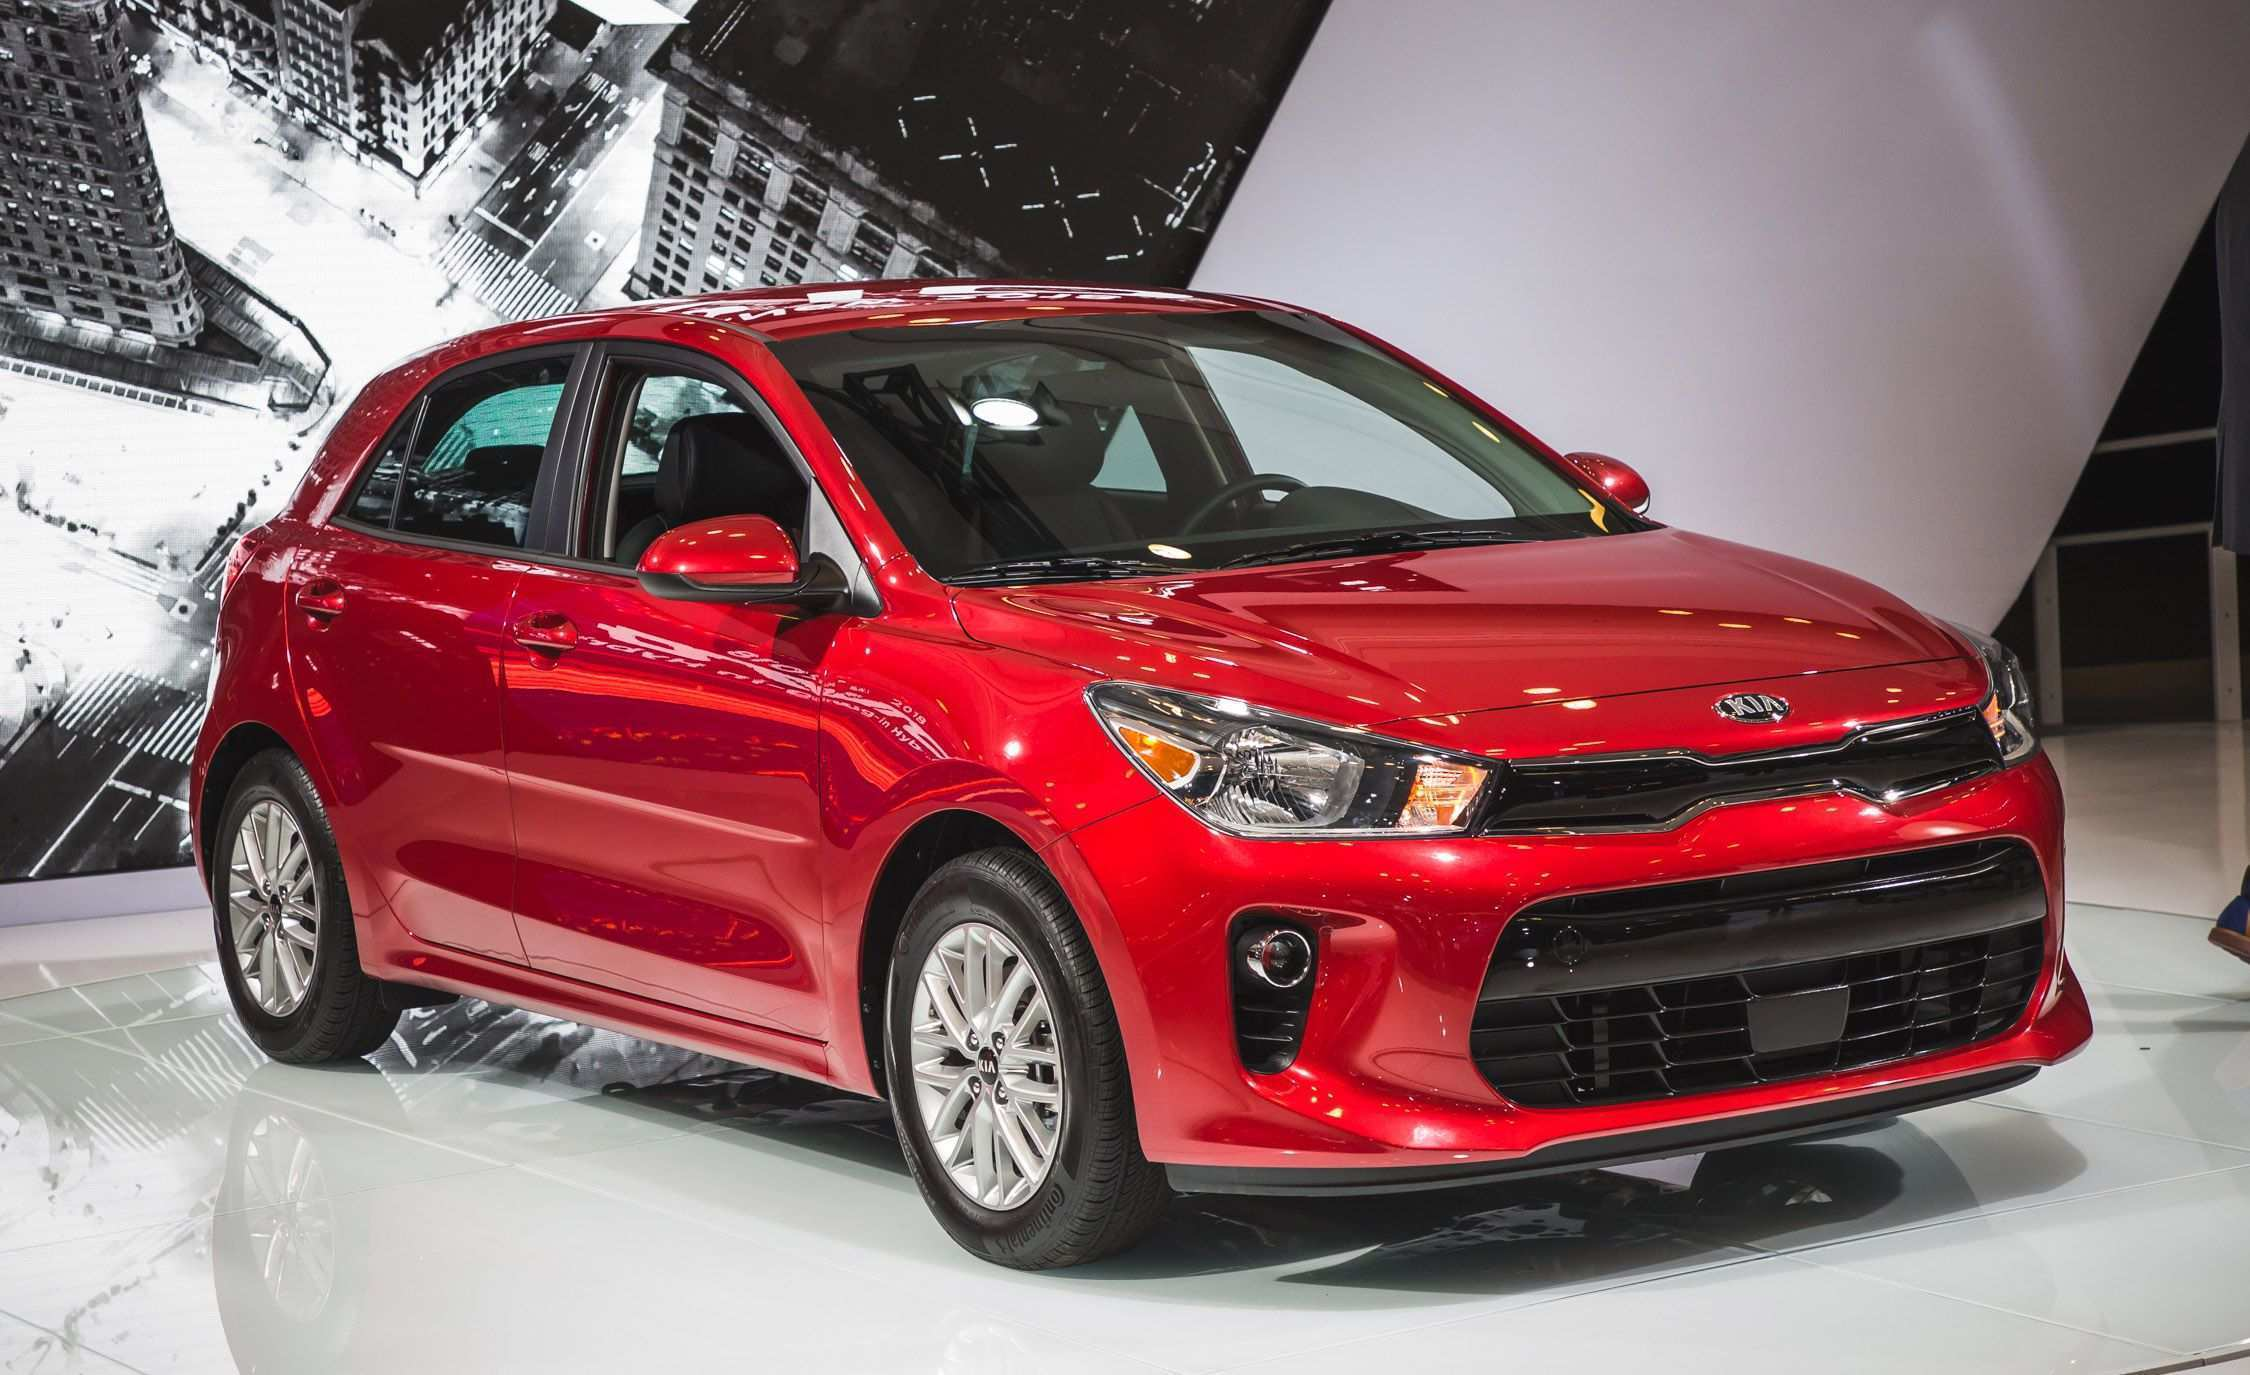 57 The Kia Rio 2019 Review Picture